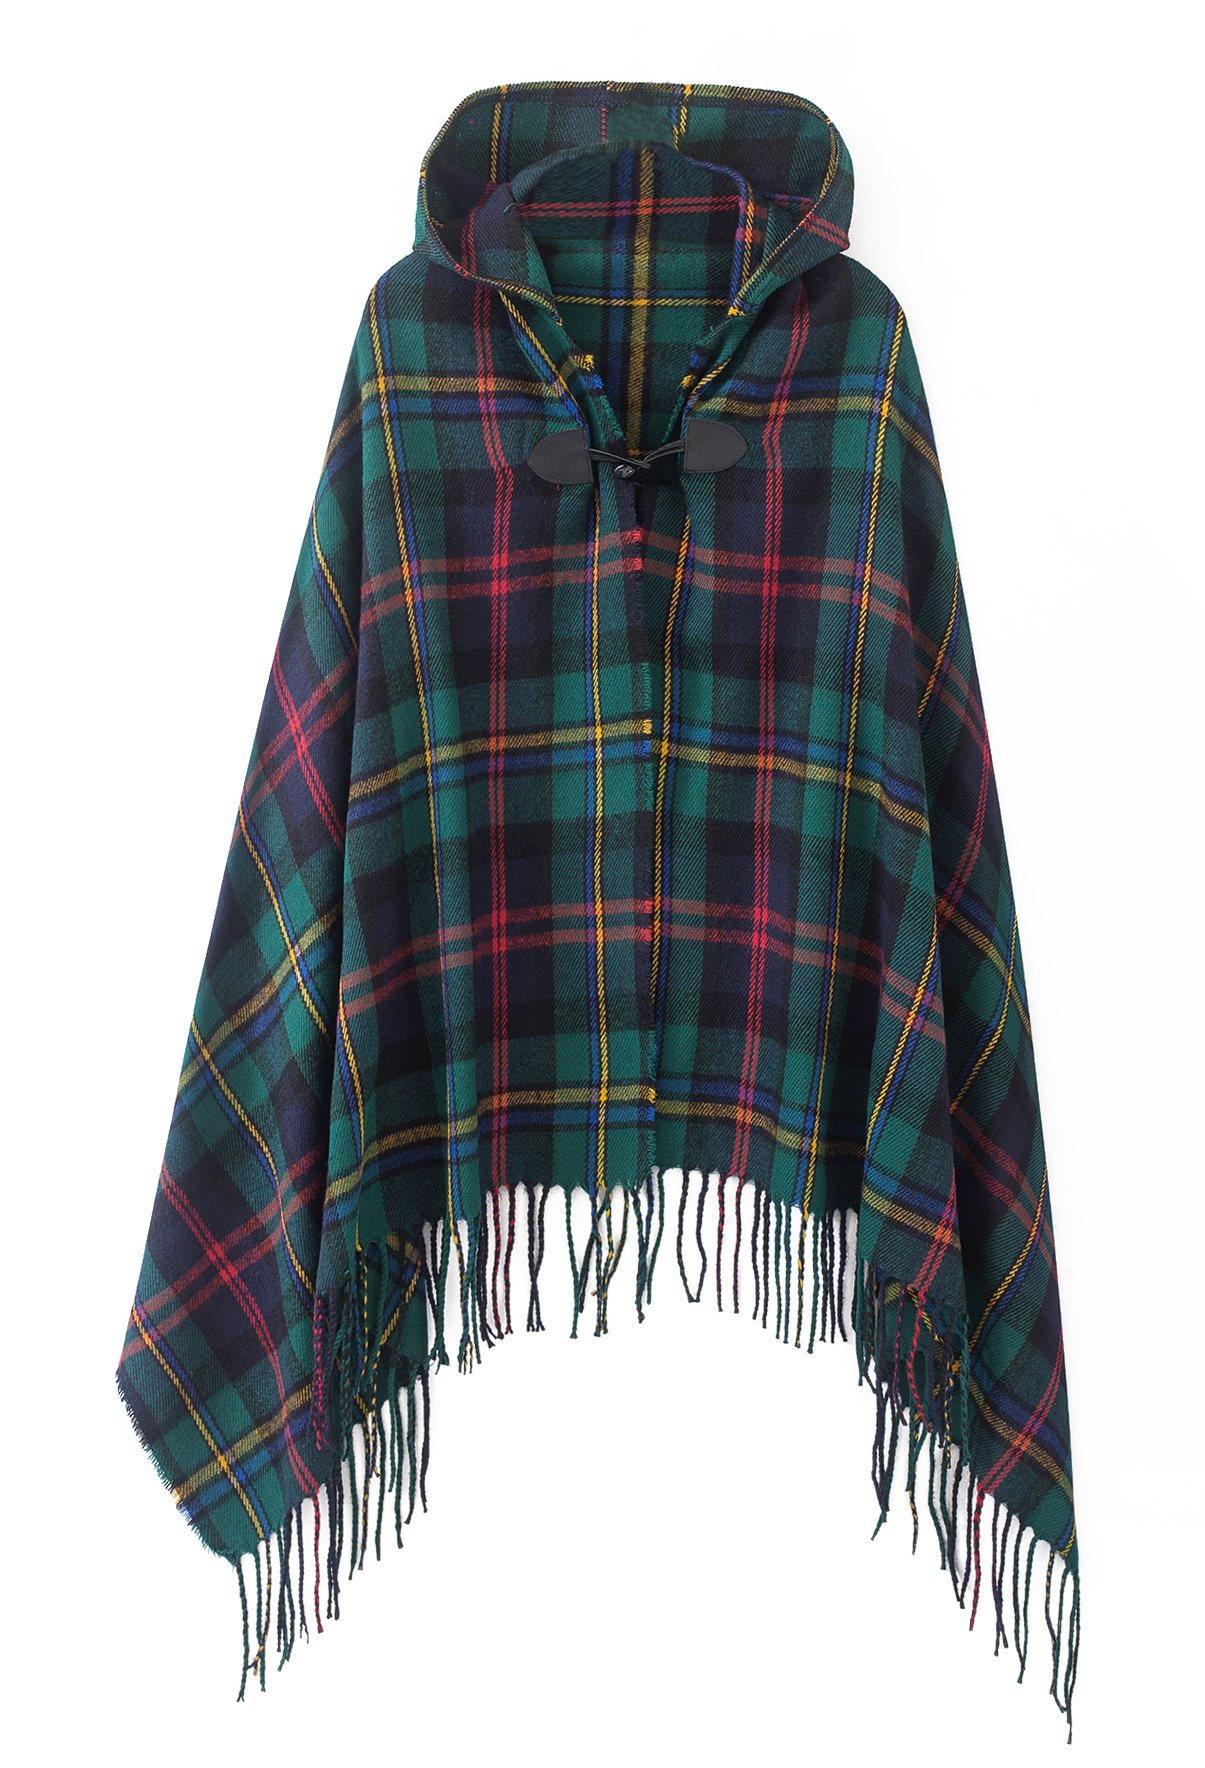 Women's Vintage Plaid Knitted Tassel Poncho Shawl Cape Button Cardigan (One Size, Series 2 Green)